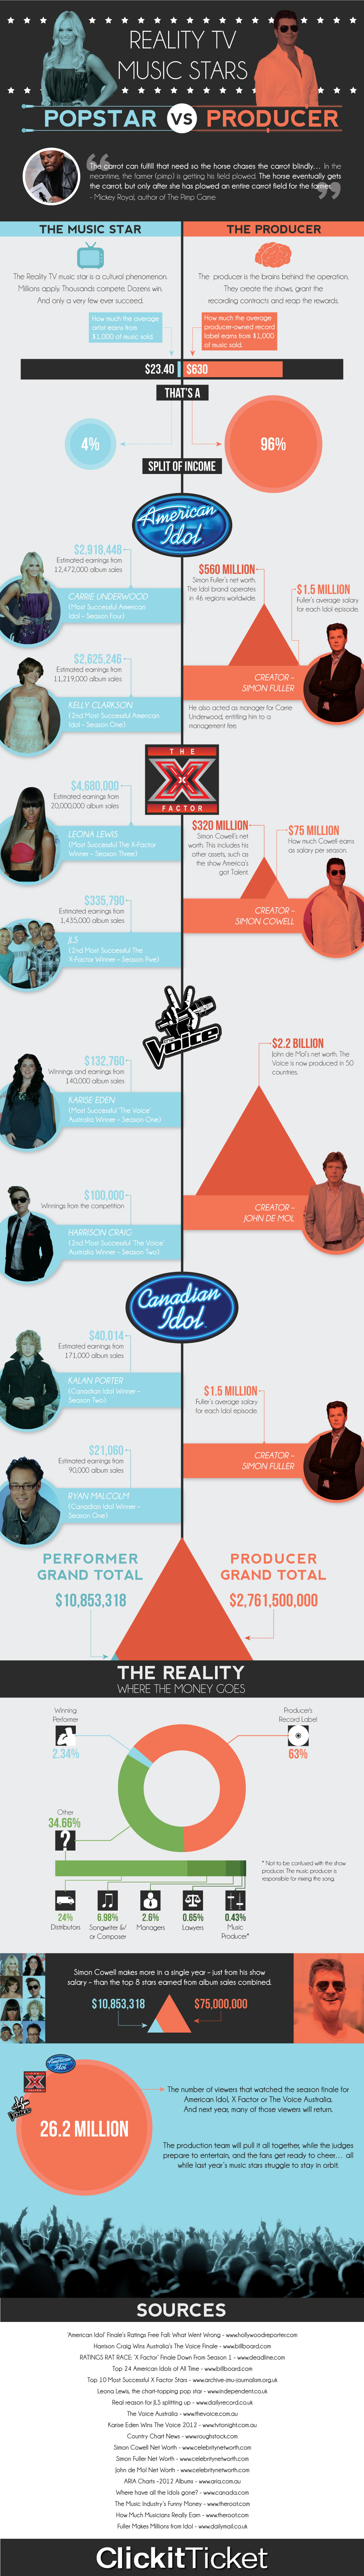 Reality TV Music Stars – Pop Star VS Producer (Infographic)